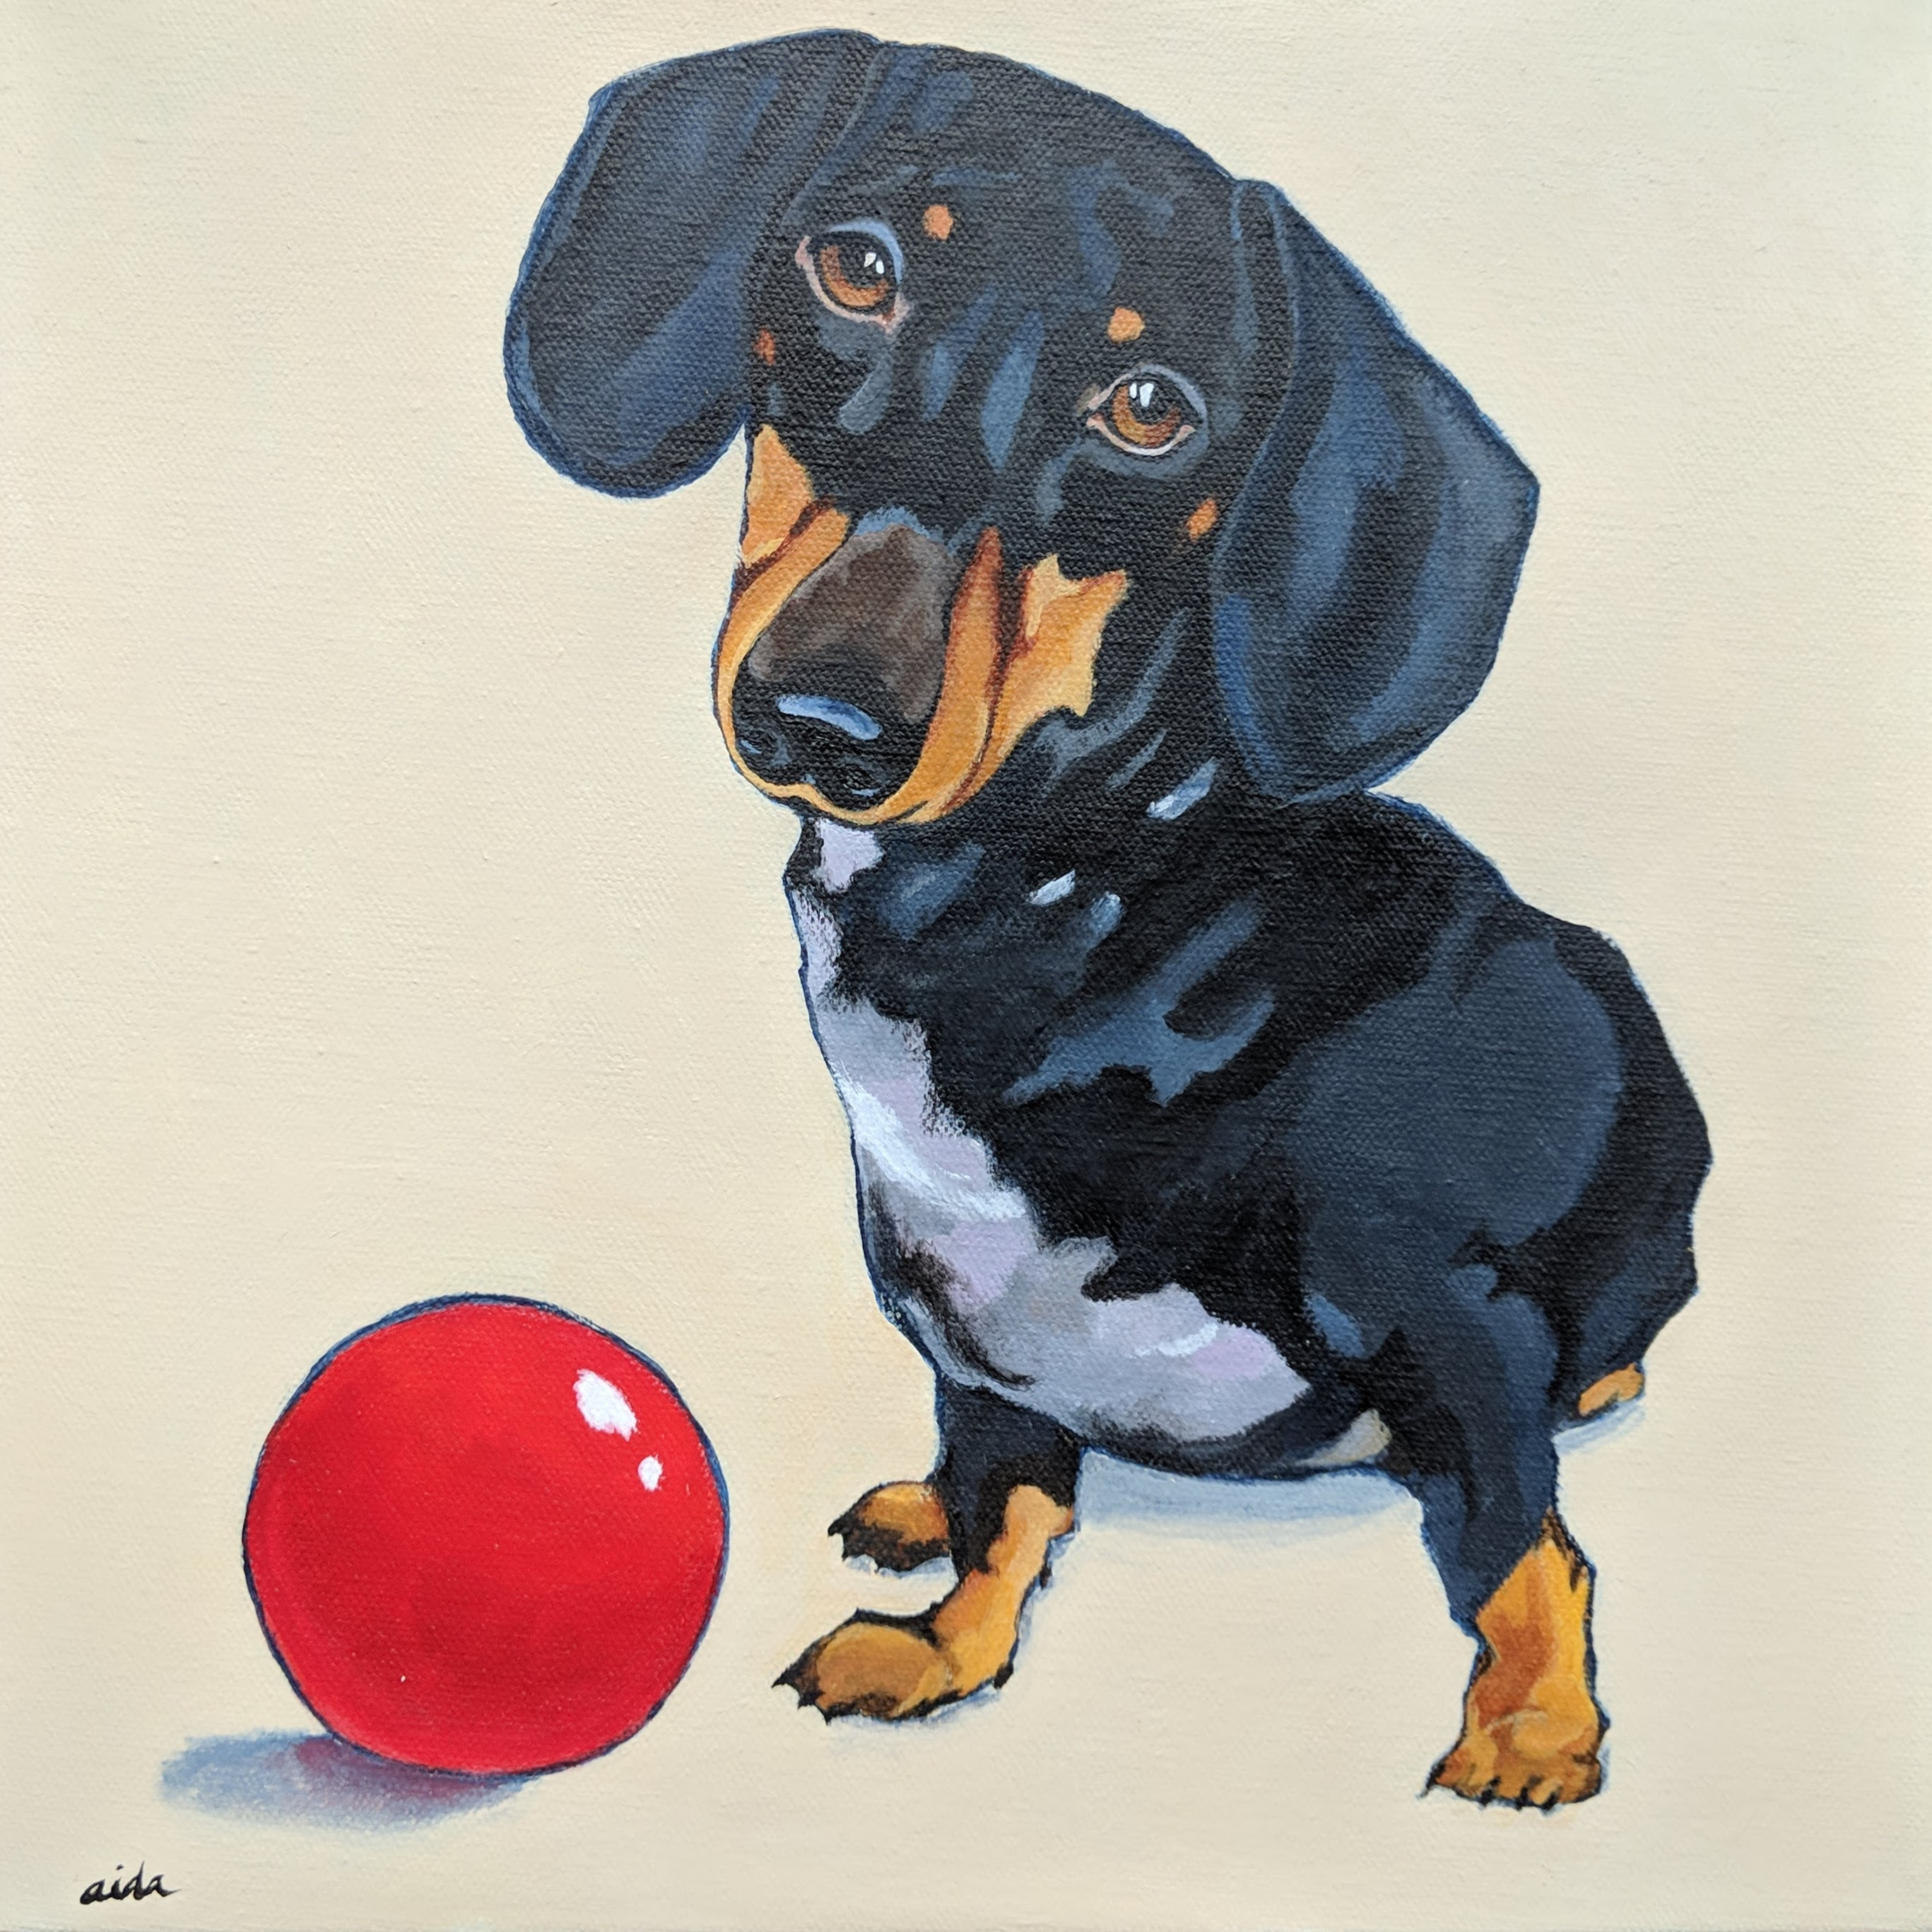 Milo and the red ball